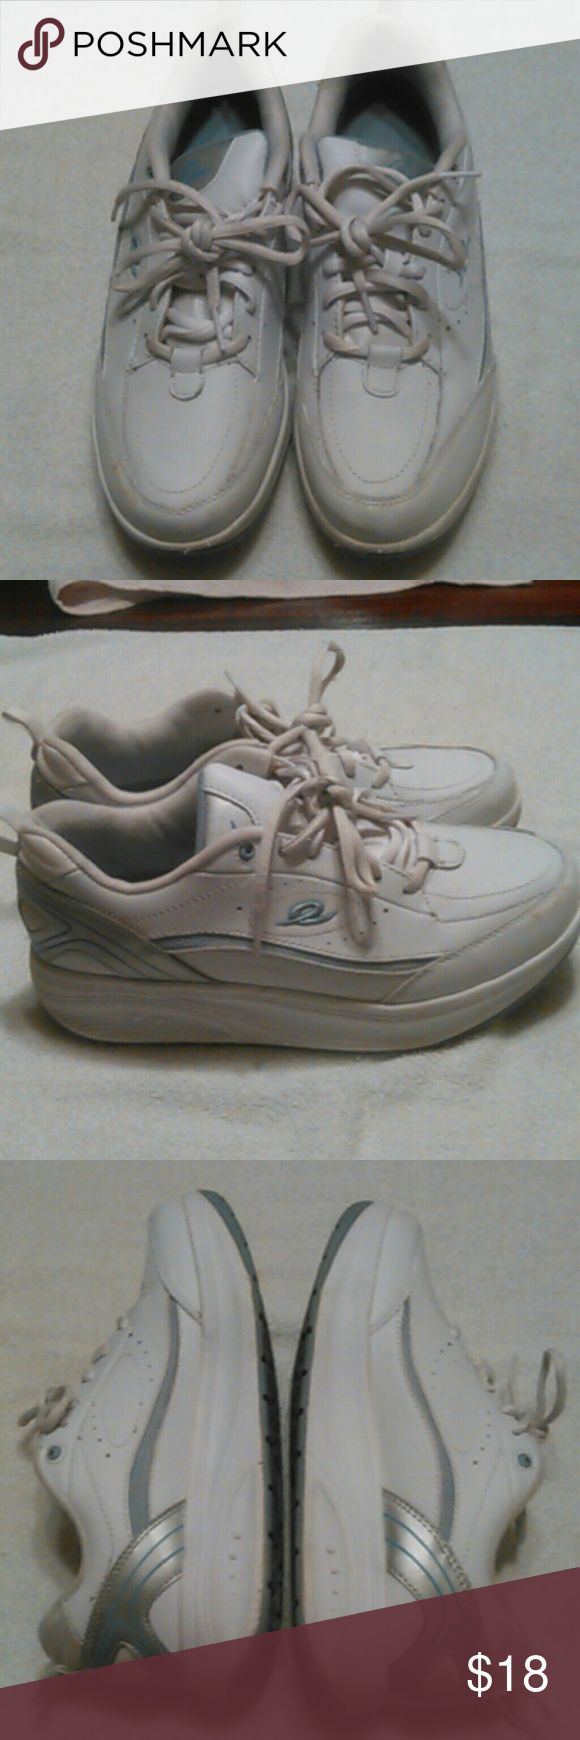 SIZE 9.5 EASY SPIRIT WOMEN WALKING SHOES GOOD CONDITION, WHITE/SILVER/GREEN, ANTIGRAVITY ESGETUPANDGO E-LASTIC, SMALL BROWN DISCOLORATION ON TIP OF RIGHT SHOE AS SEEN IN PICTURE Easy Spirit Shoes Athletic Shoes